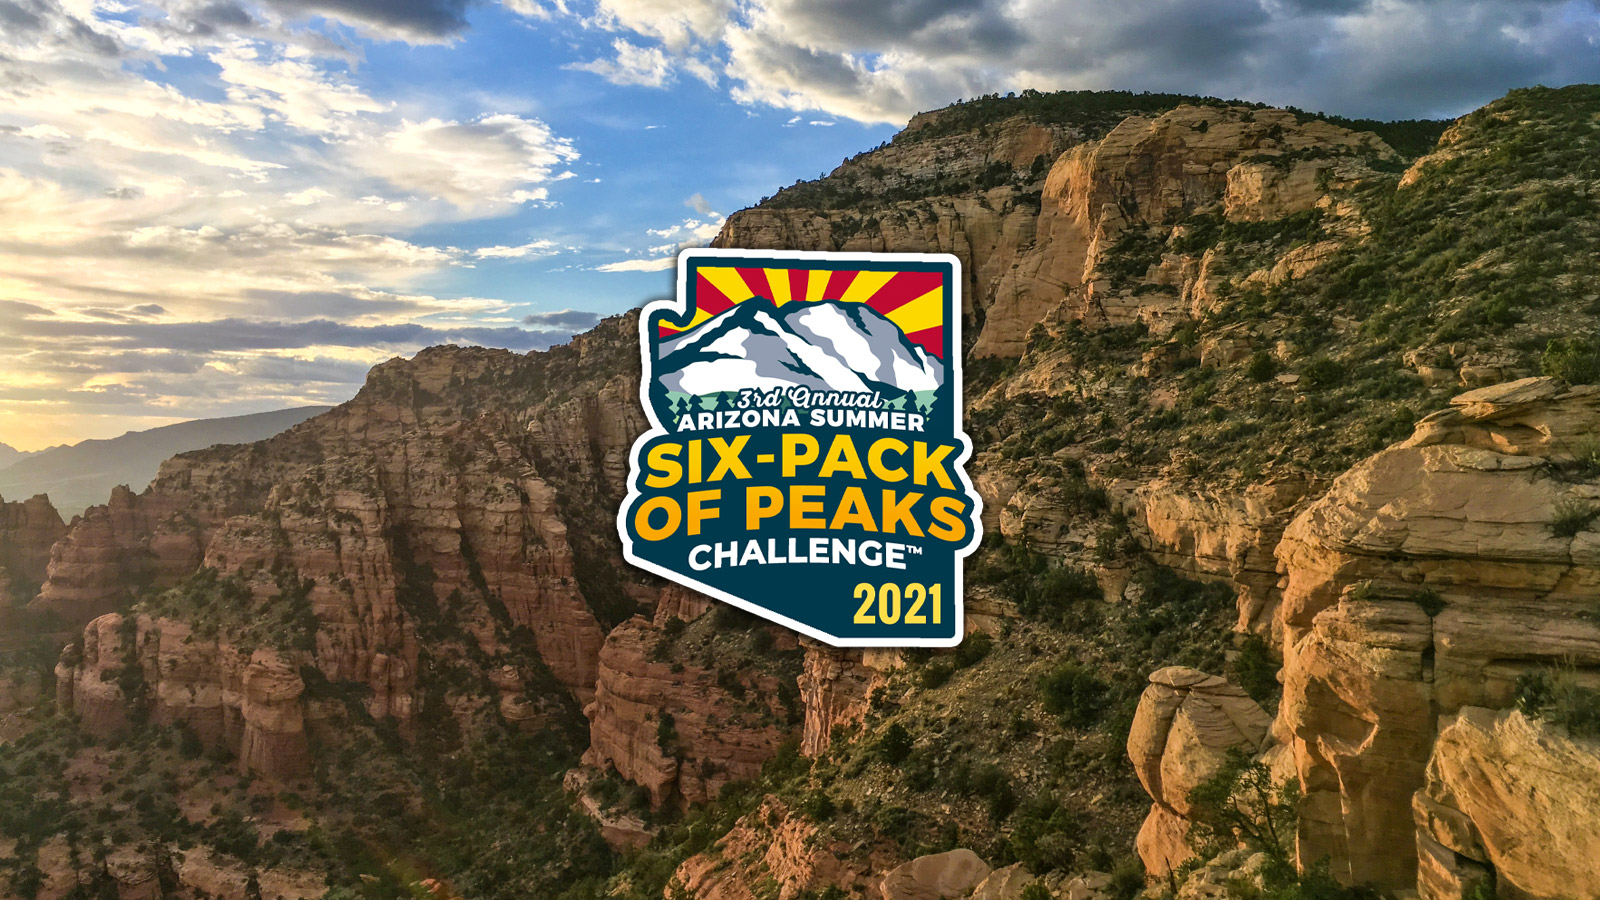 2021 Arizona Summer Six-Pack of Peaks Challenge Discussion Forum